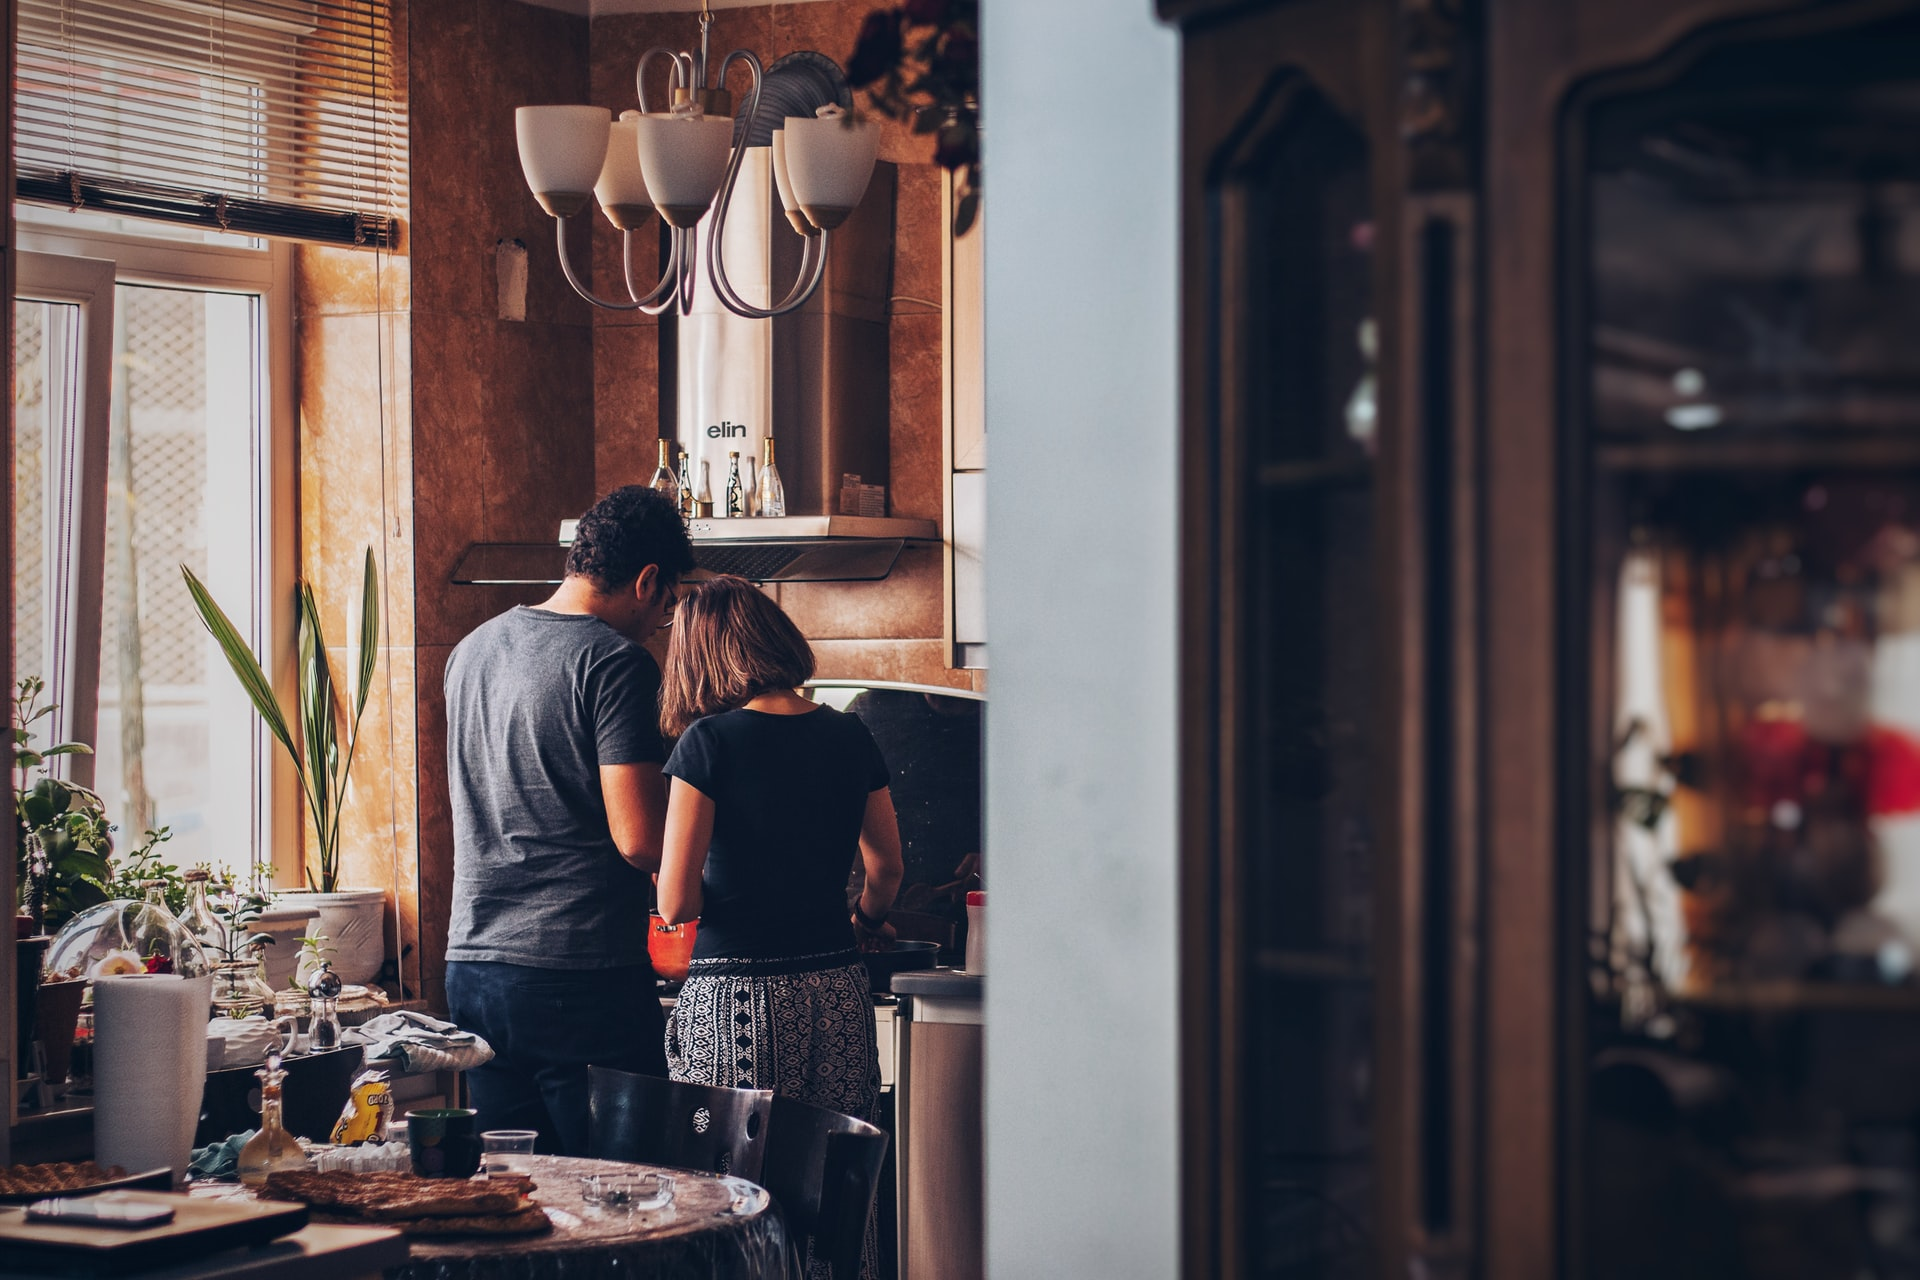 4 Easy Ways to Shake Up Your Home Life